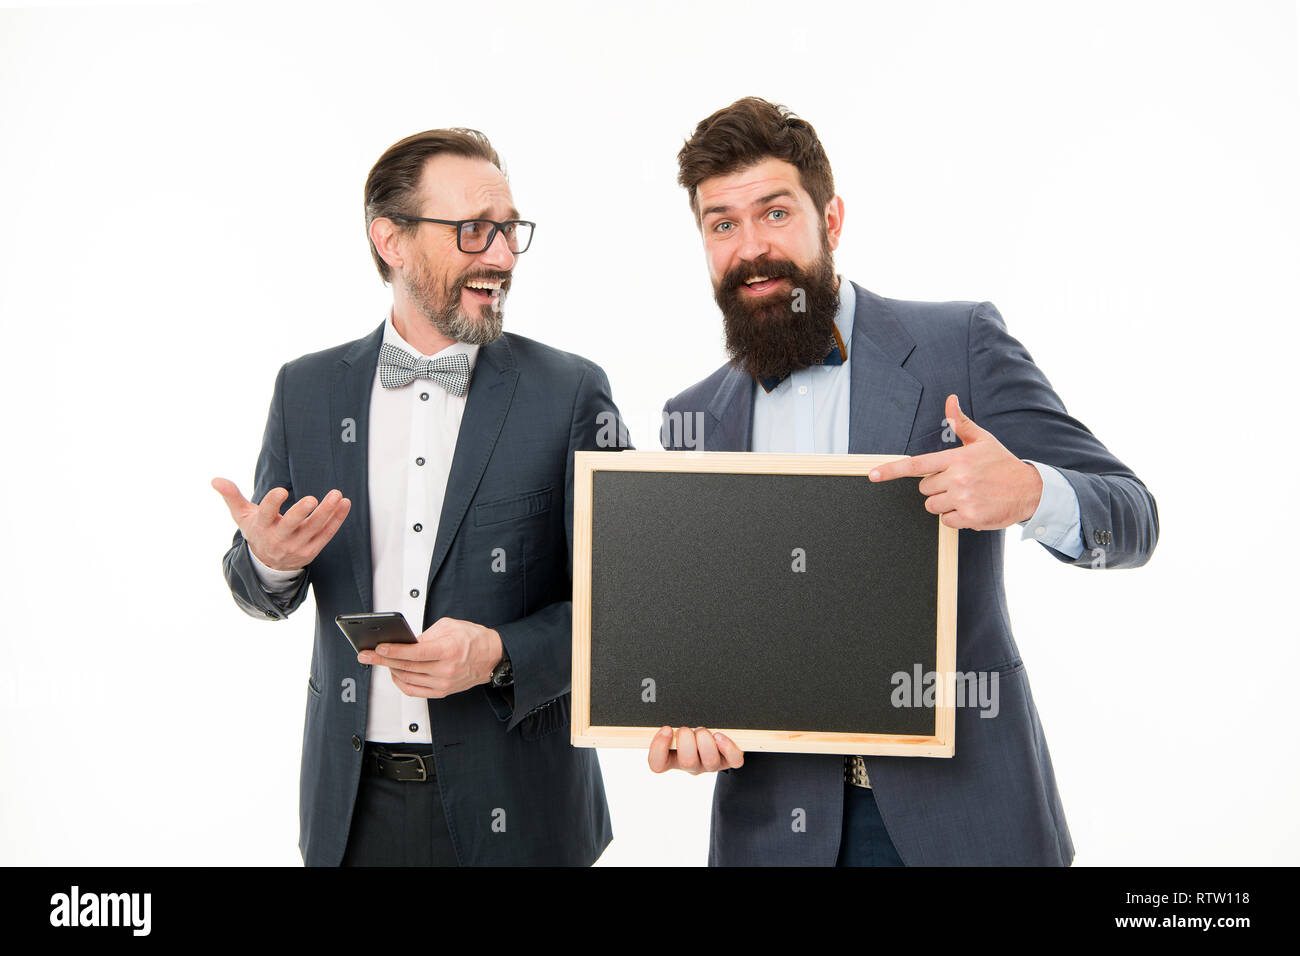 Conference timing. Men successful entrepreneurs on white background. Join our business team. Business people concept. Men bearded guys wear formal suits. Well groomed business man hold chalkboard. - Stock Image